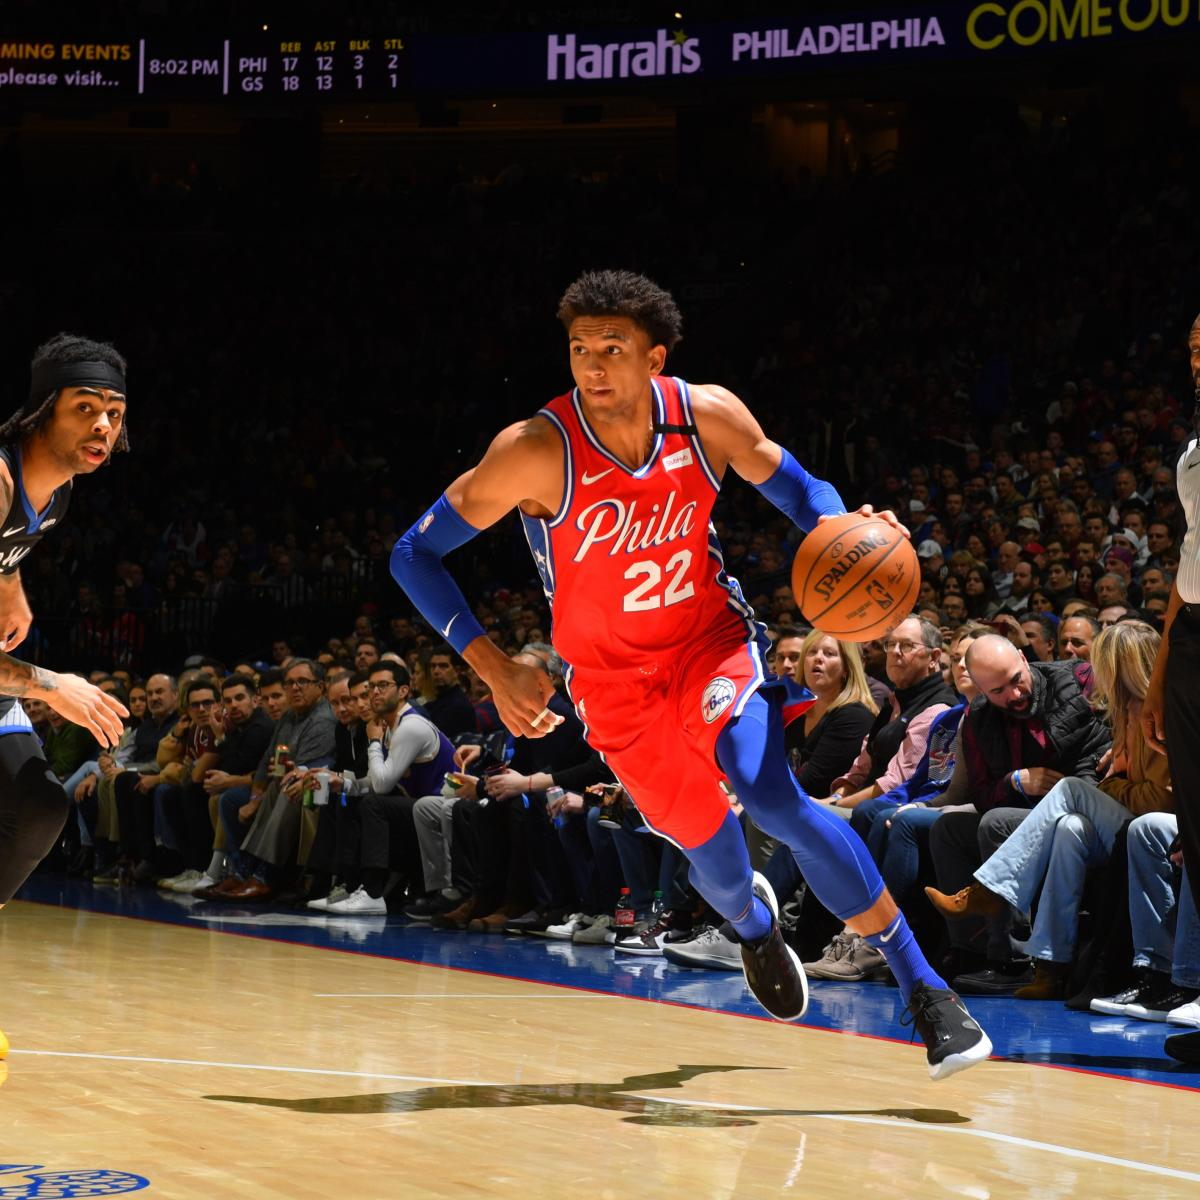 Nba Rising Stars Challenge: Matisse Thybulle's Agent Criticizes NBA Assistant Coaches